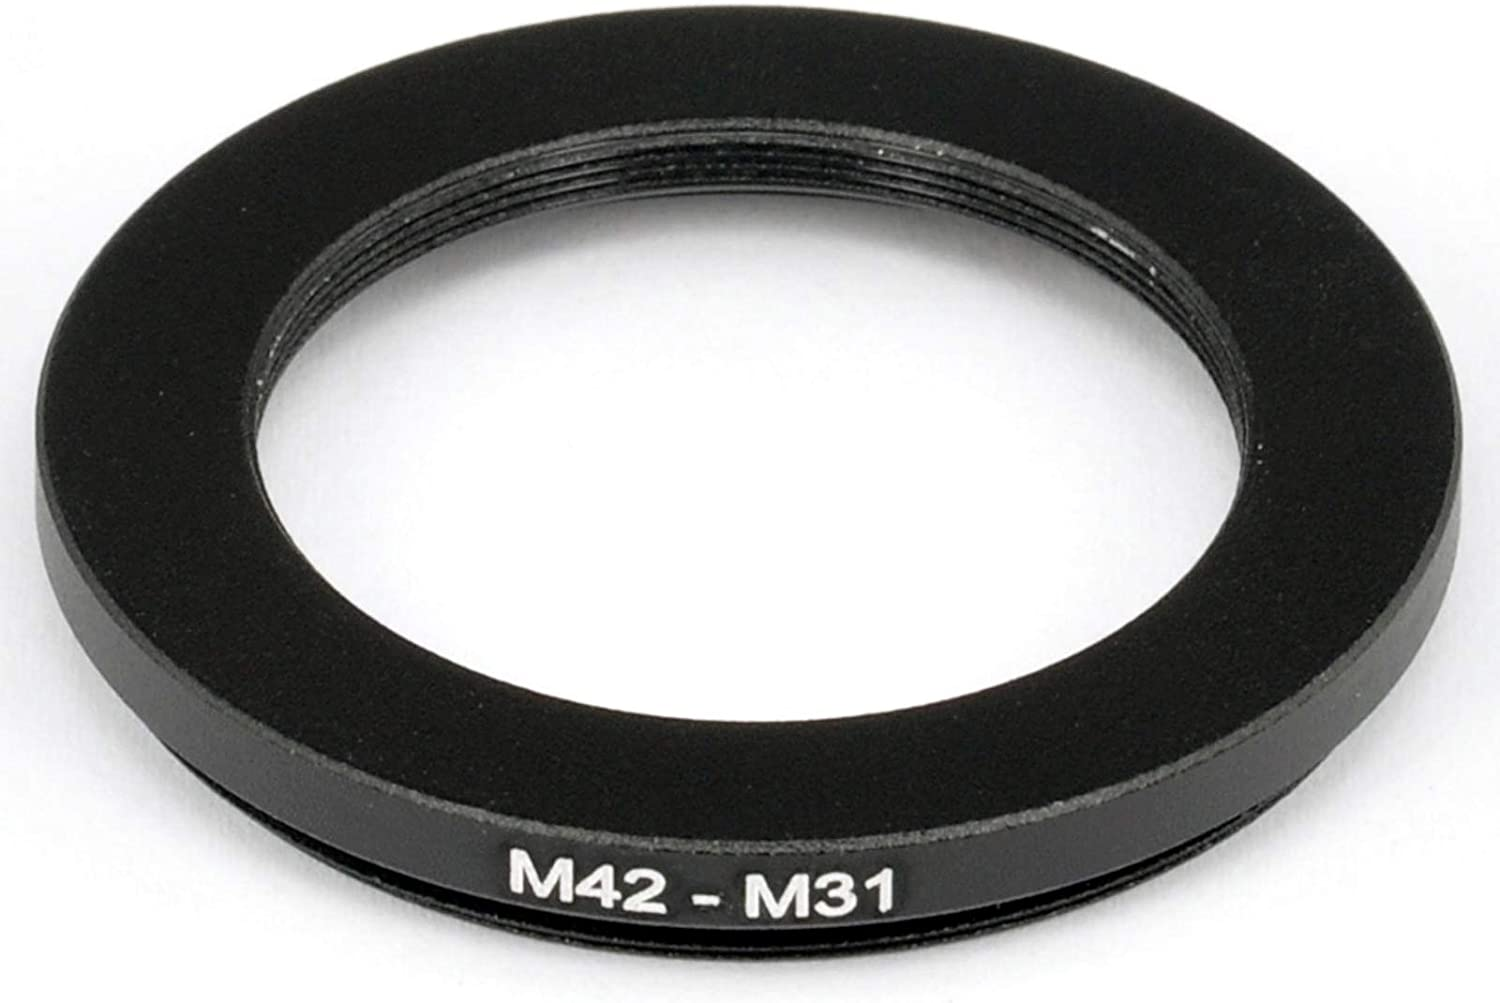 M42-M31 mm Male to Female Step-Down Coupling Ring Adapter for Lens Filter Telescope to M31 42mm 1mm Thread Pitch 31mm 0.5mm Thread Pitch Metal M42